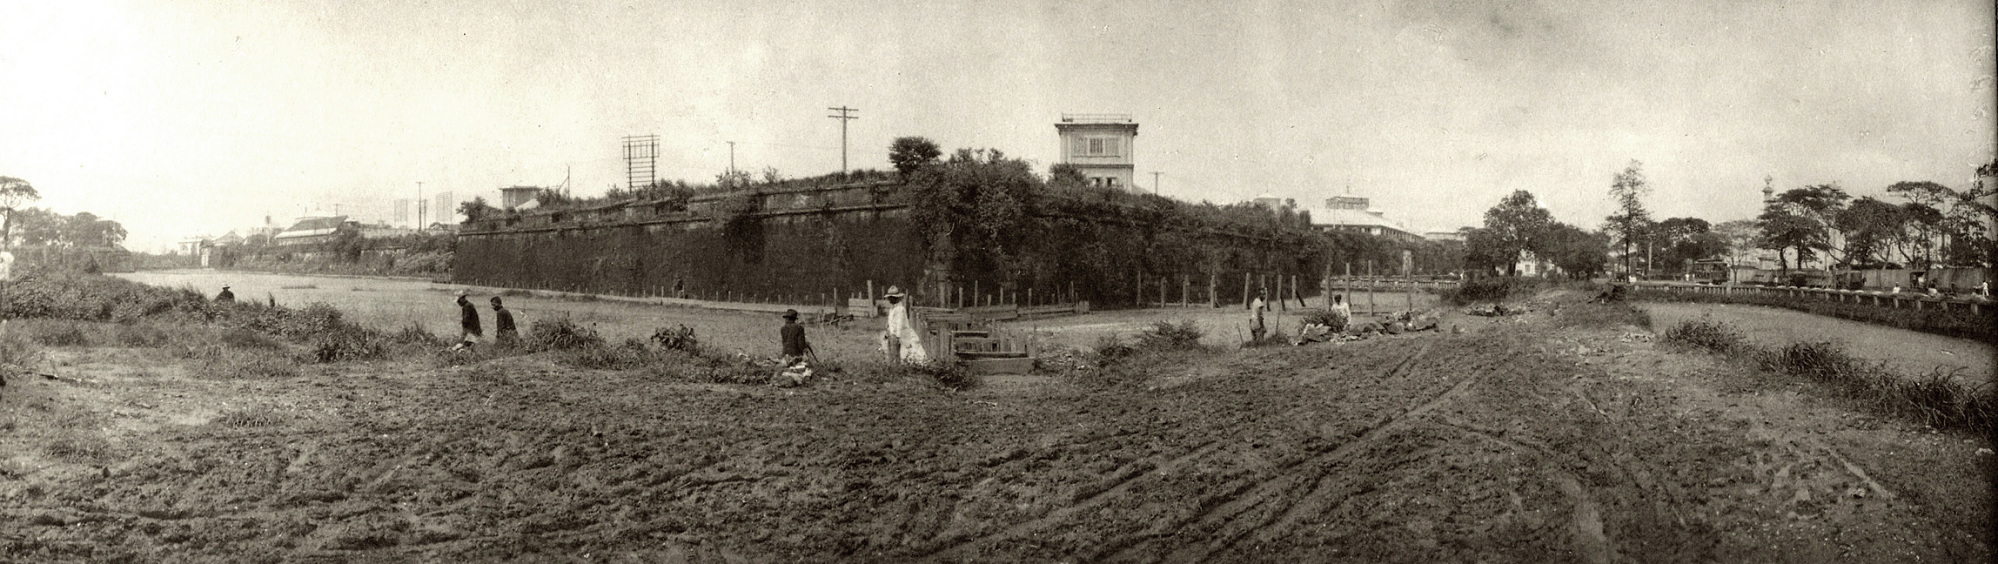 Panoramic view of walls of the Intramuros from the Pasig River side